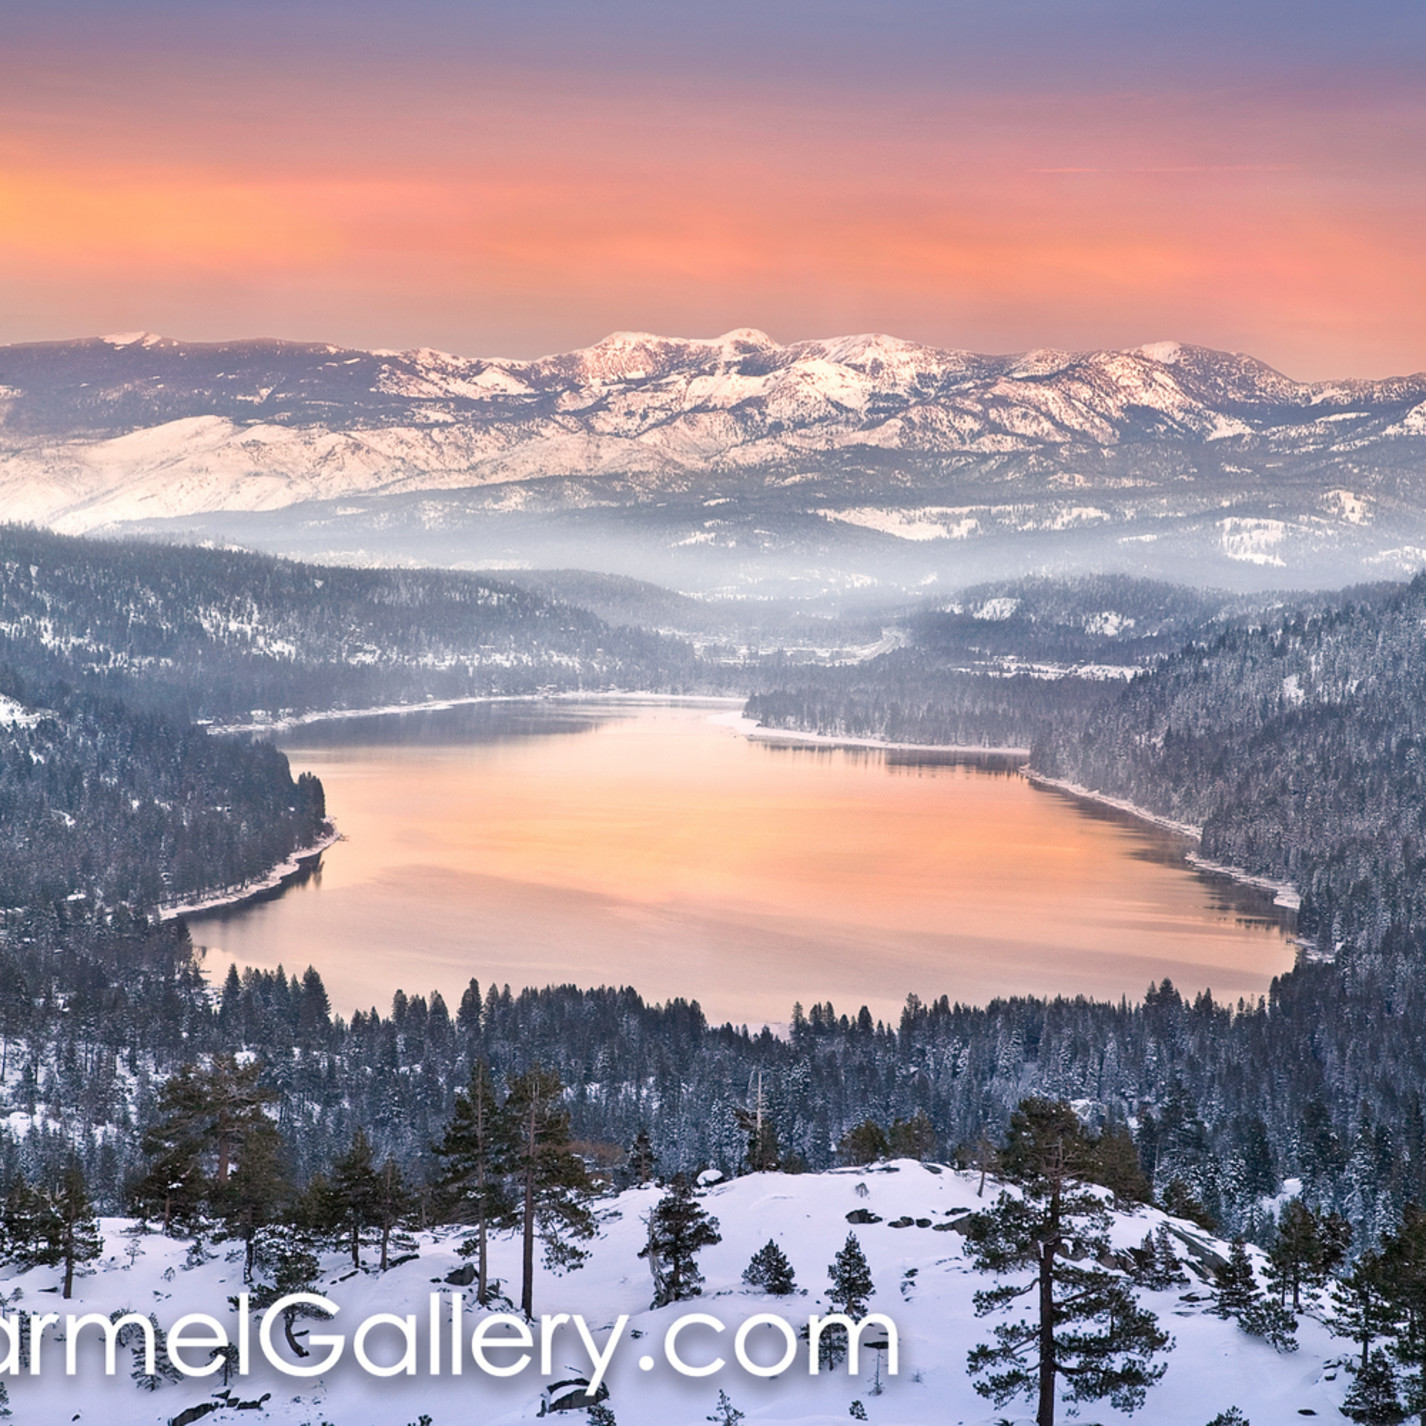 Afterglow donner lake ag0uu7